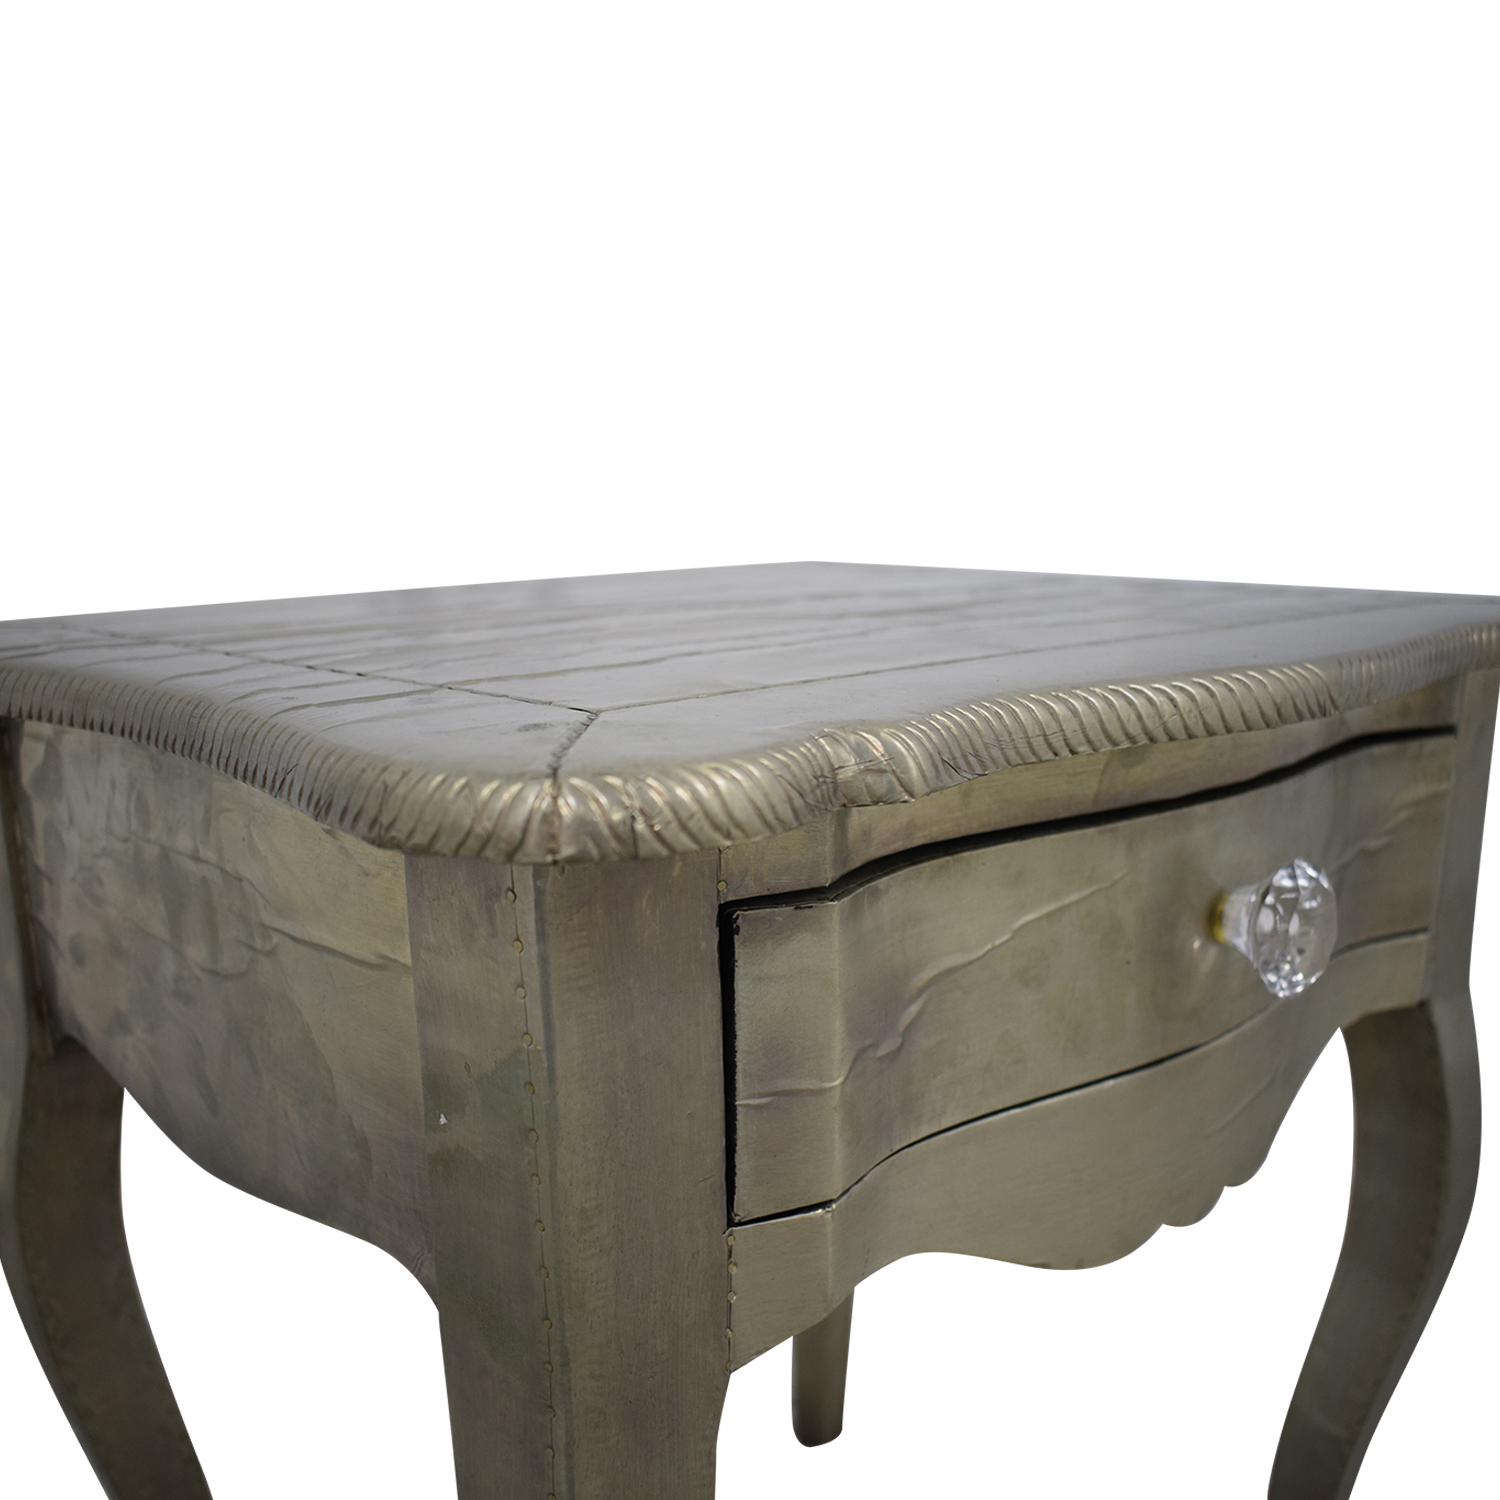 ABC Carpet & Home ABC Carpet & Home Wood Silver Leaf Bedside Table coupon